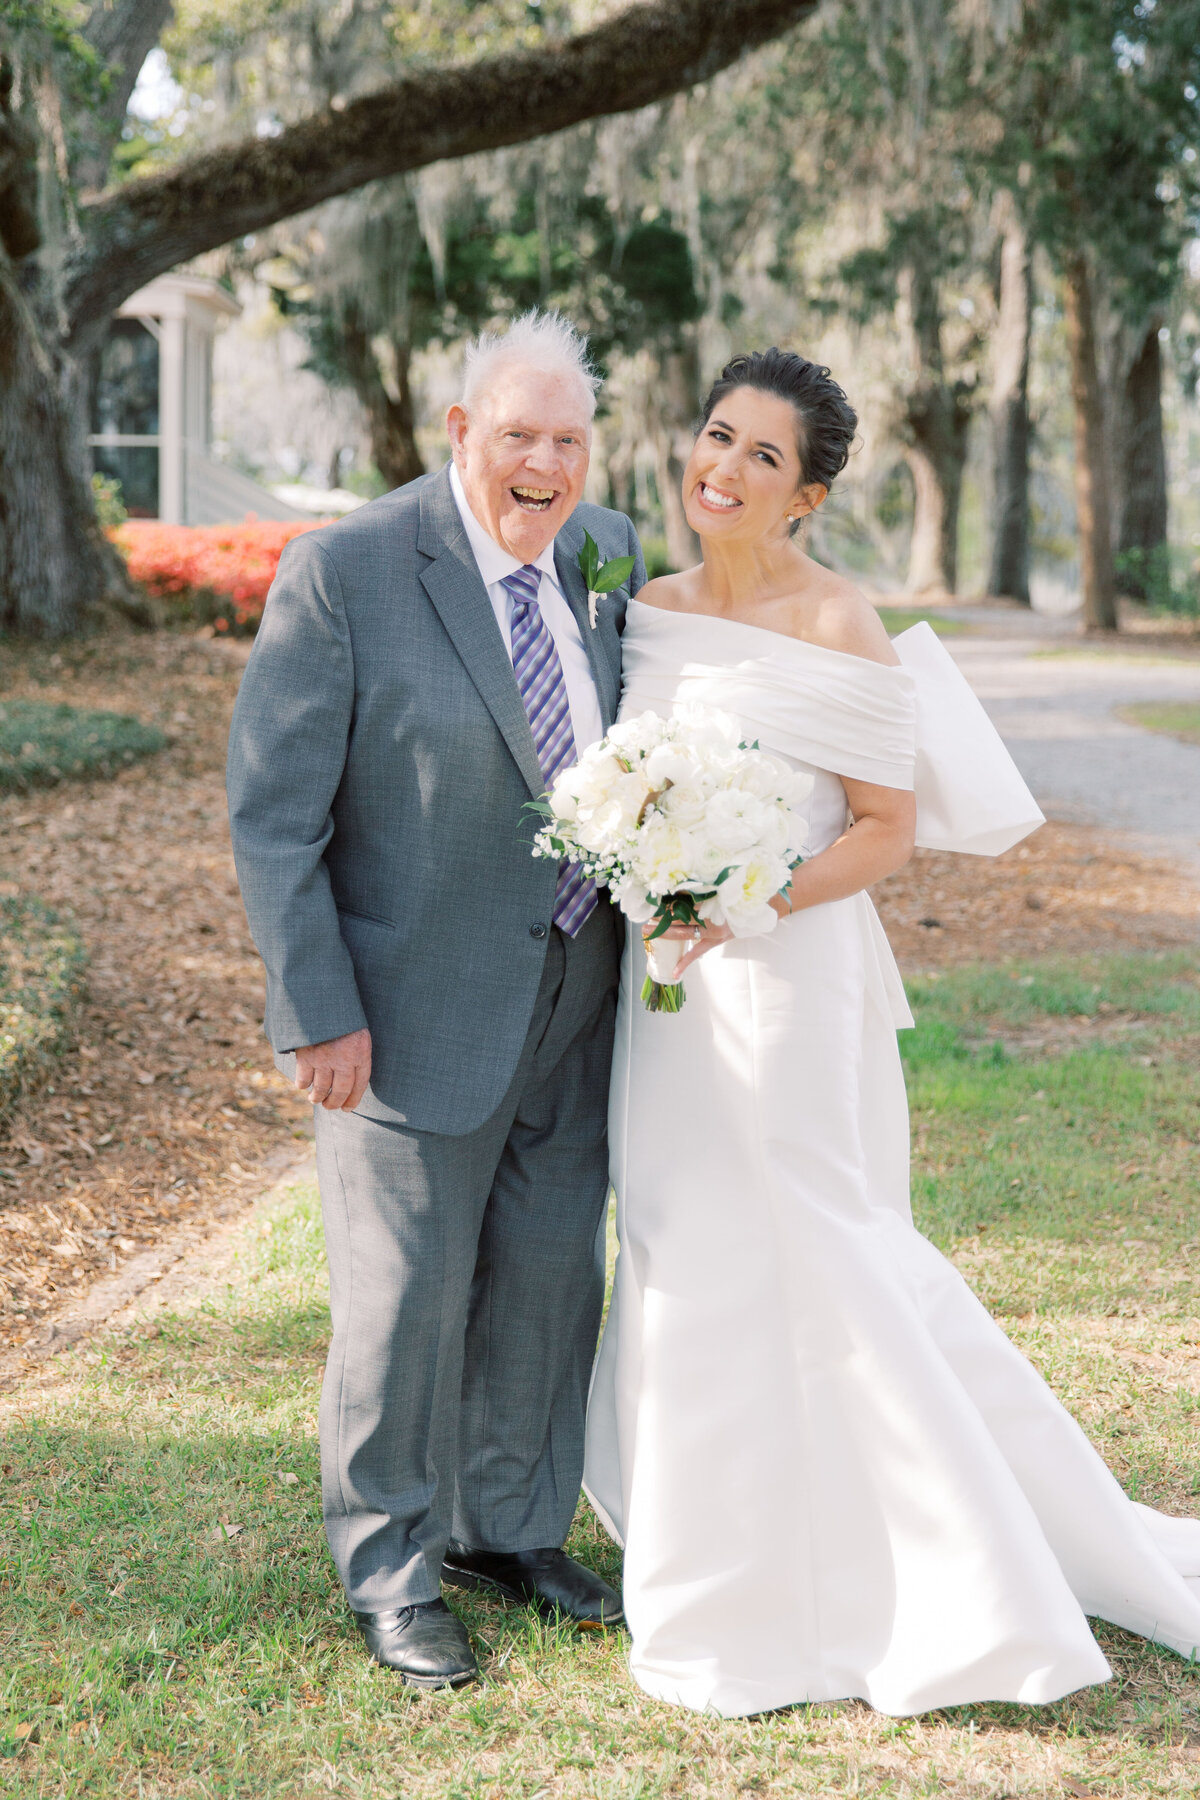 Powell_Oldfield_River_Club_Bluffton_South_Carolina_Beaufort_Savannah_Wedding_Jacksonville_Florida_Devon_Donnahoo_Photography_0708